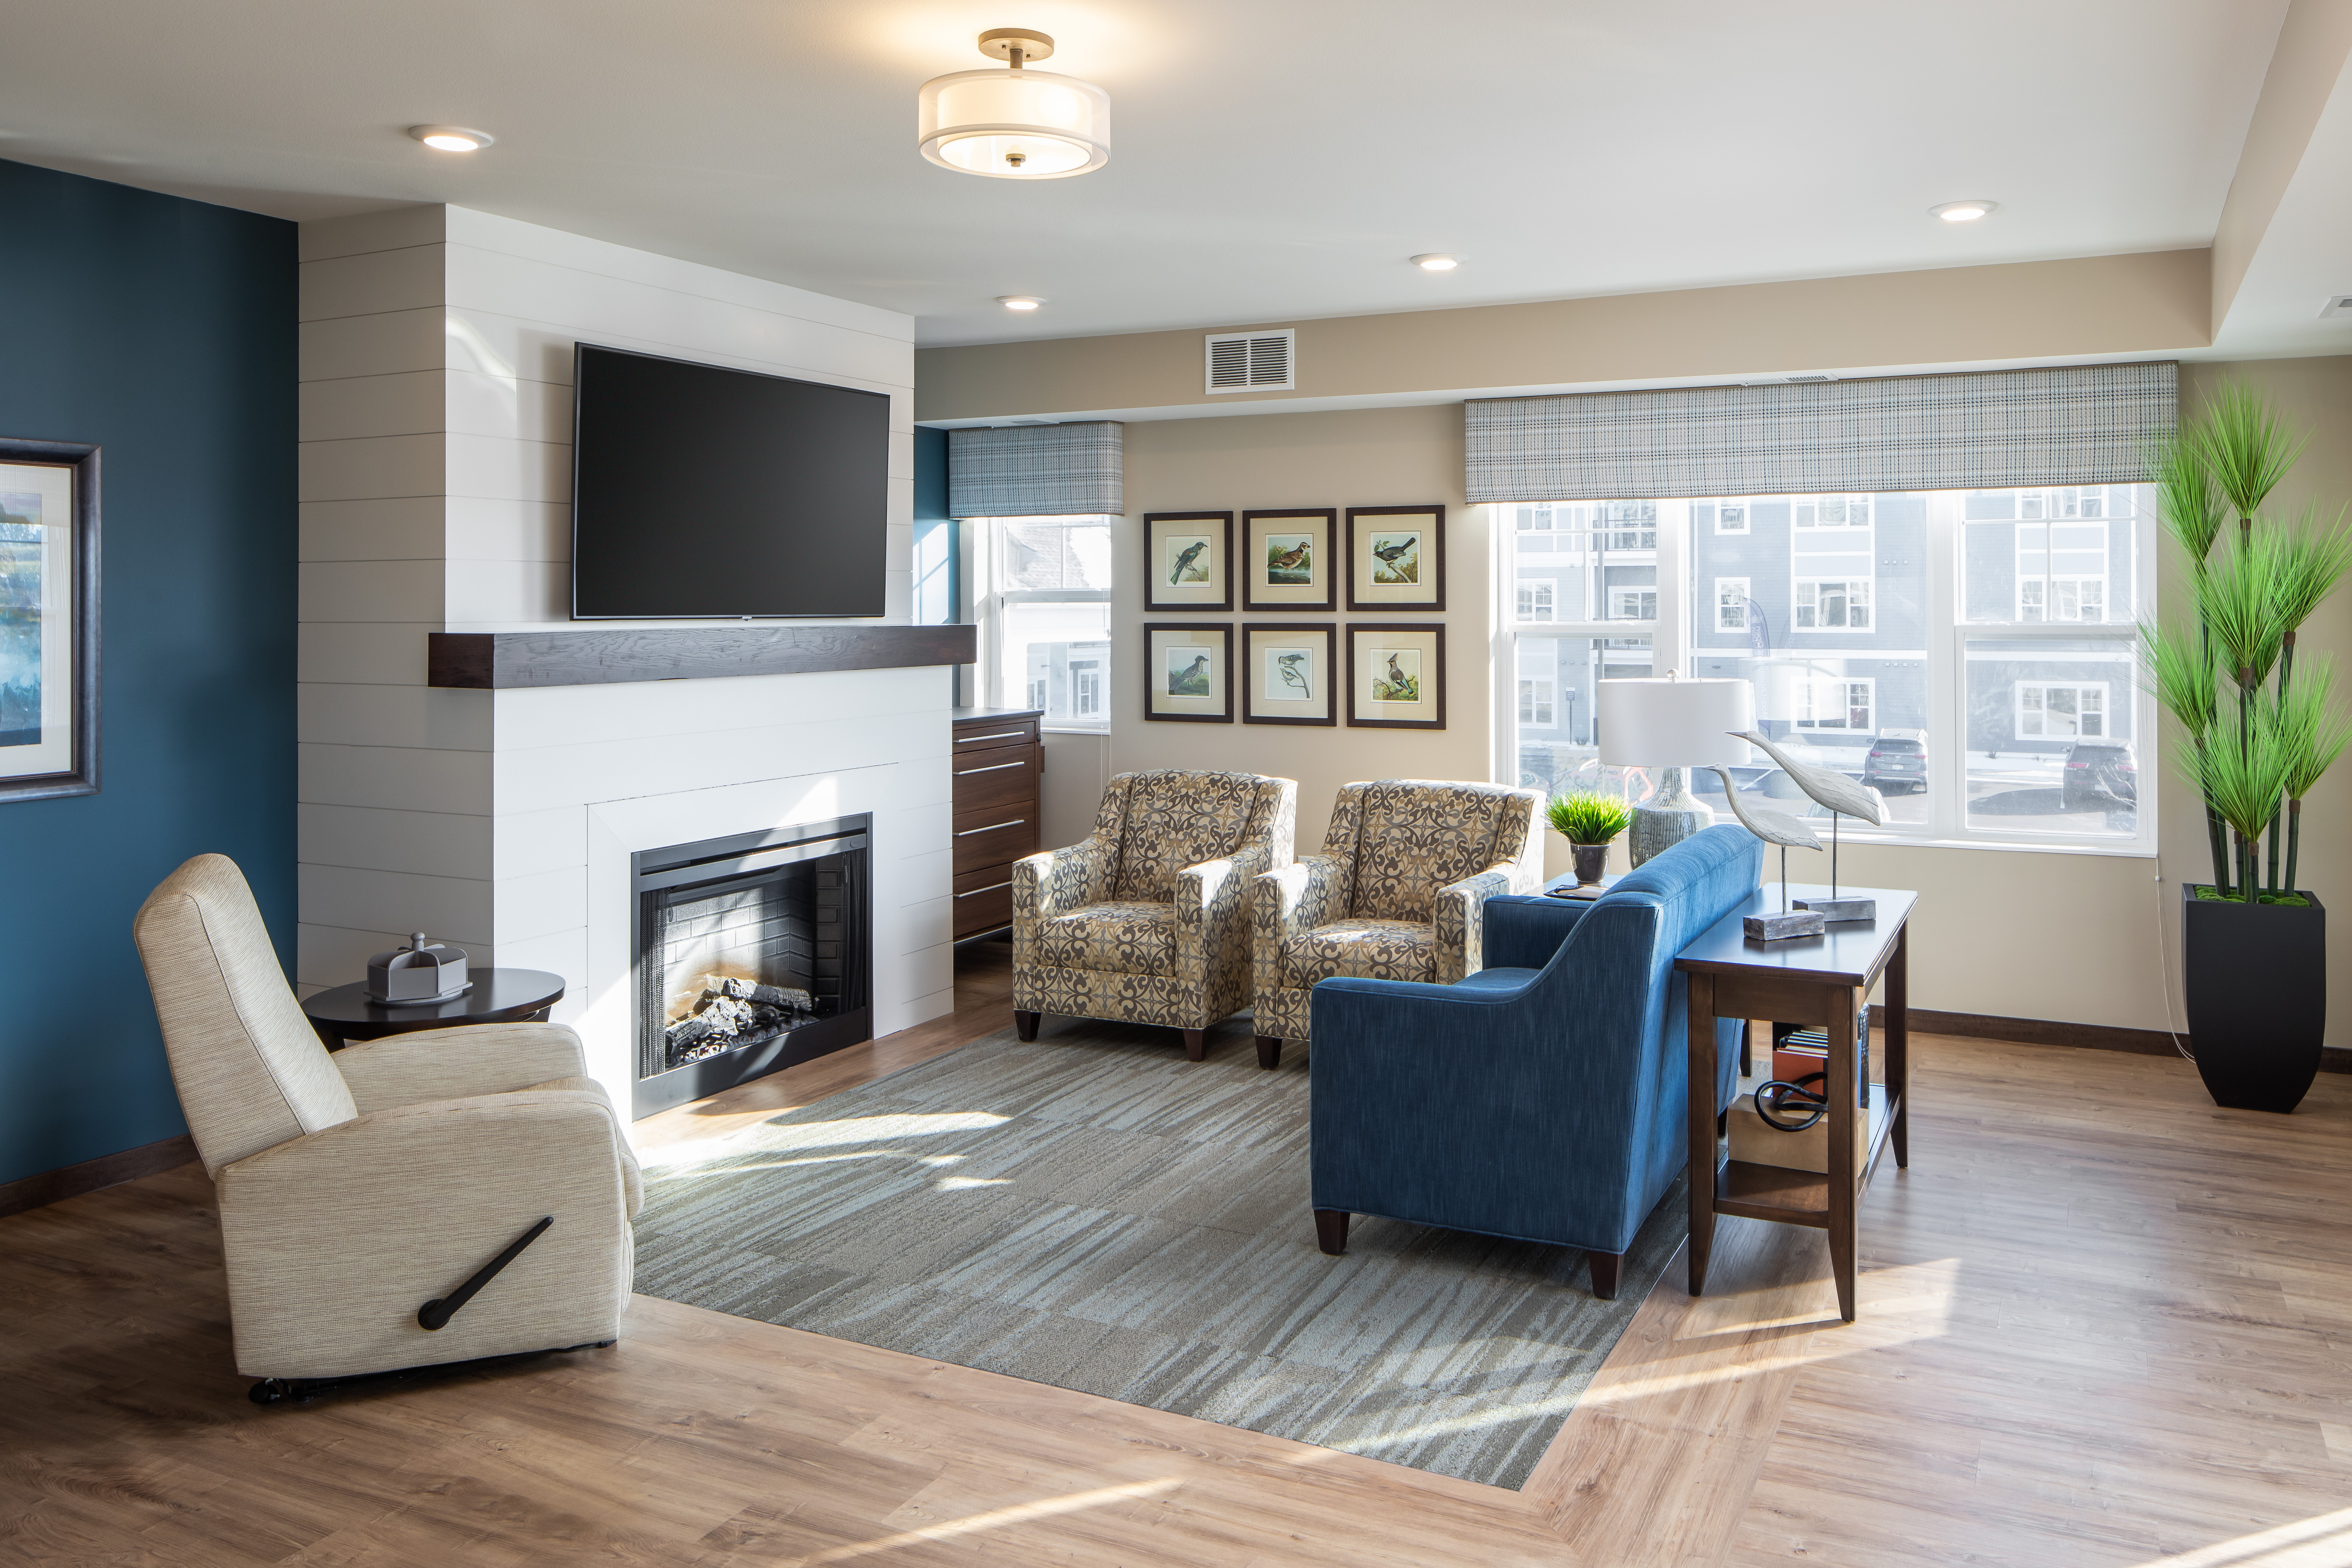 Havenwood of Burnsville opens new care suites neighborhood